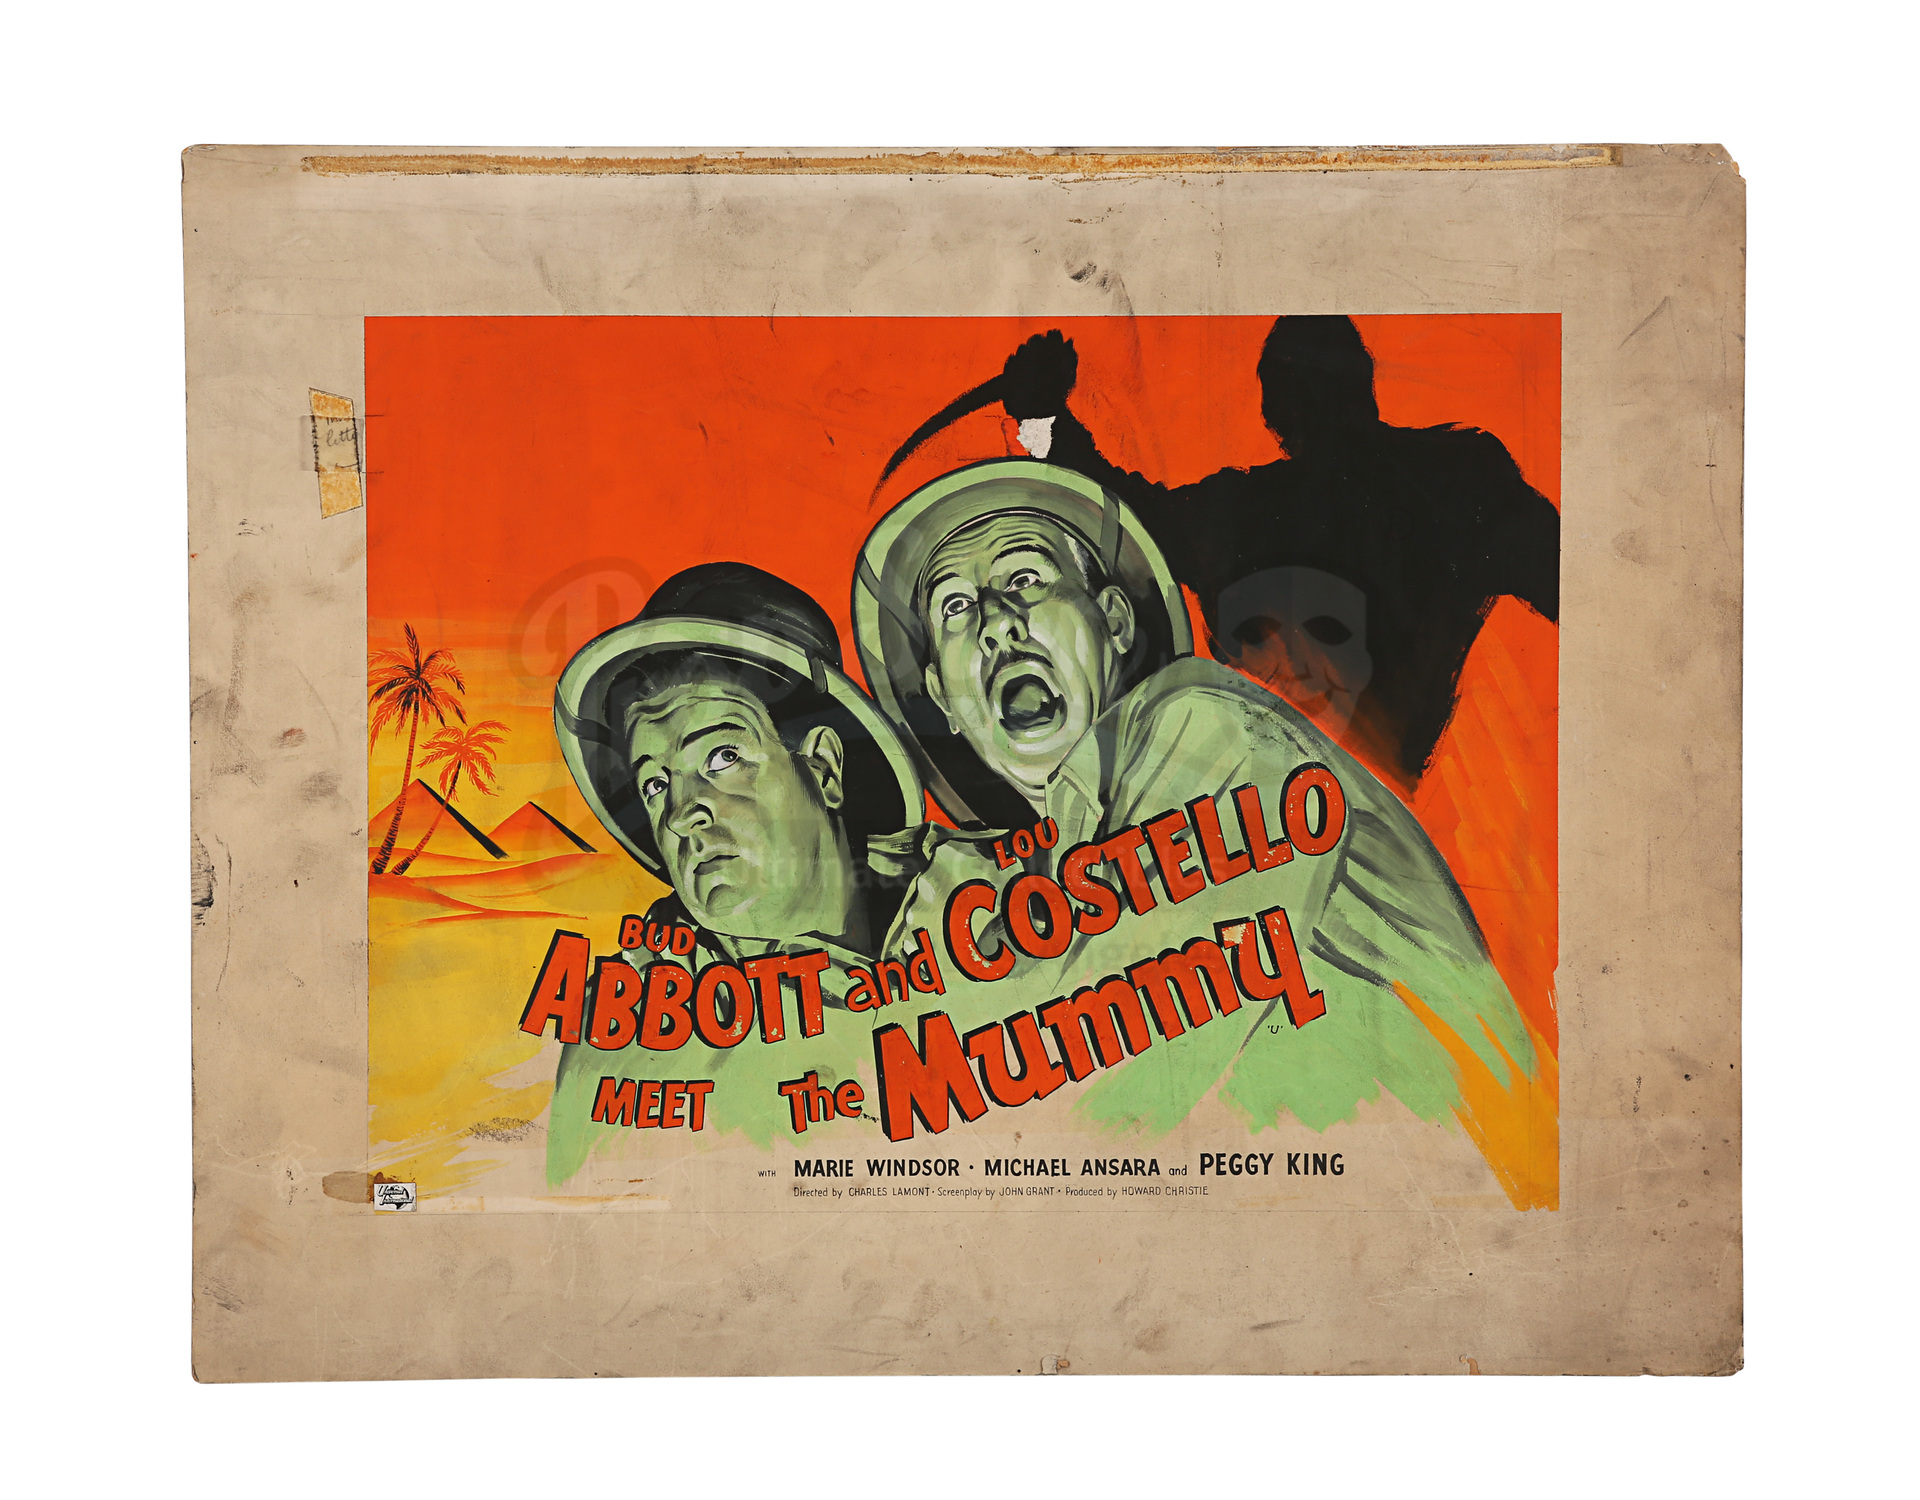 Lot # 449: ABBOTT AND COSTELLO MEET THE MUMMY - Hand-painted British Quad Poster Concept Artwork